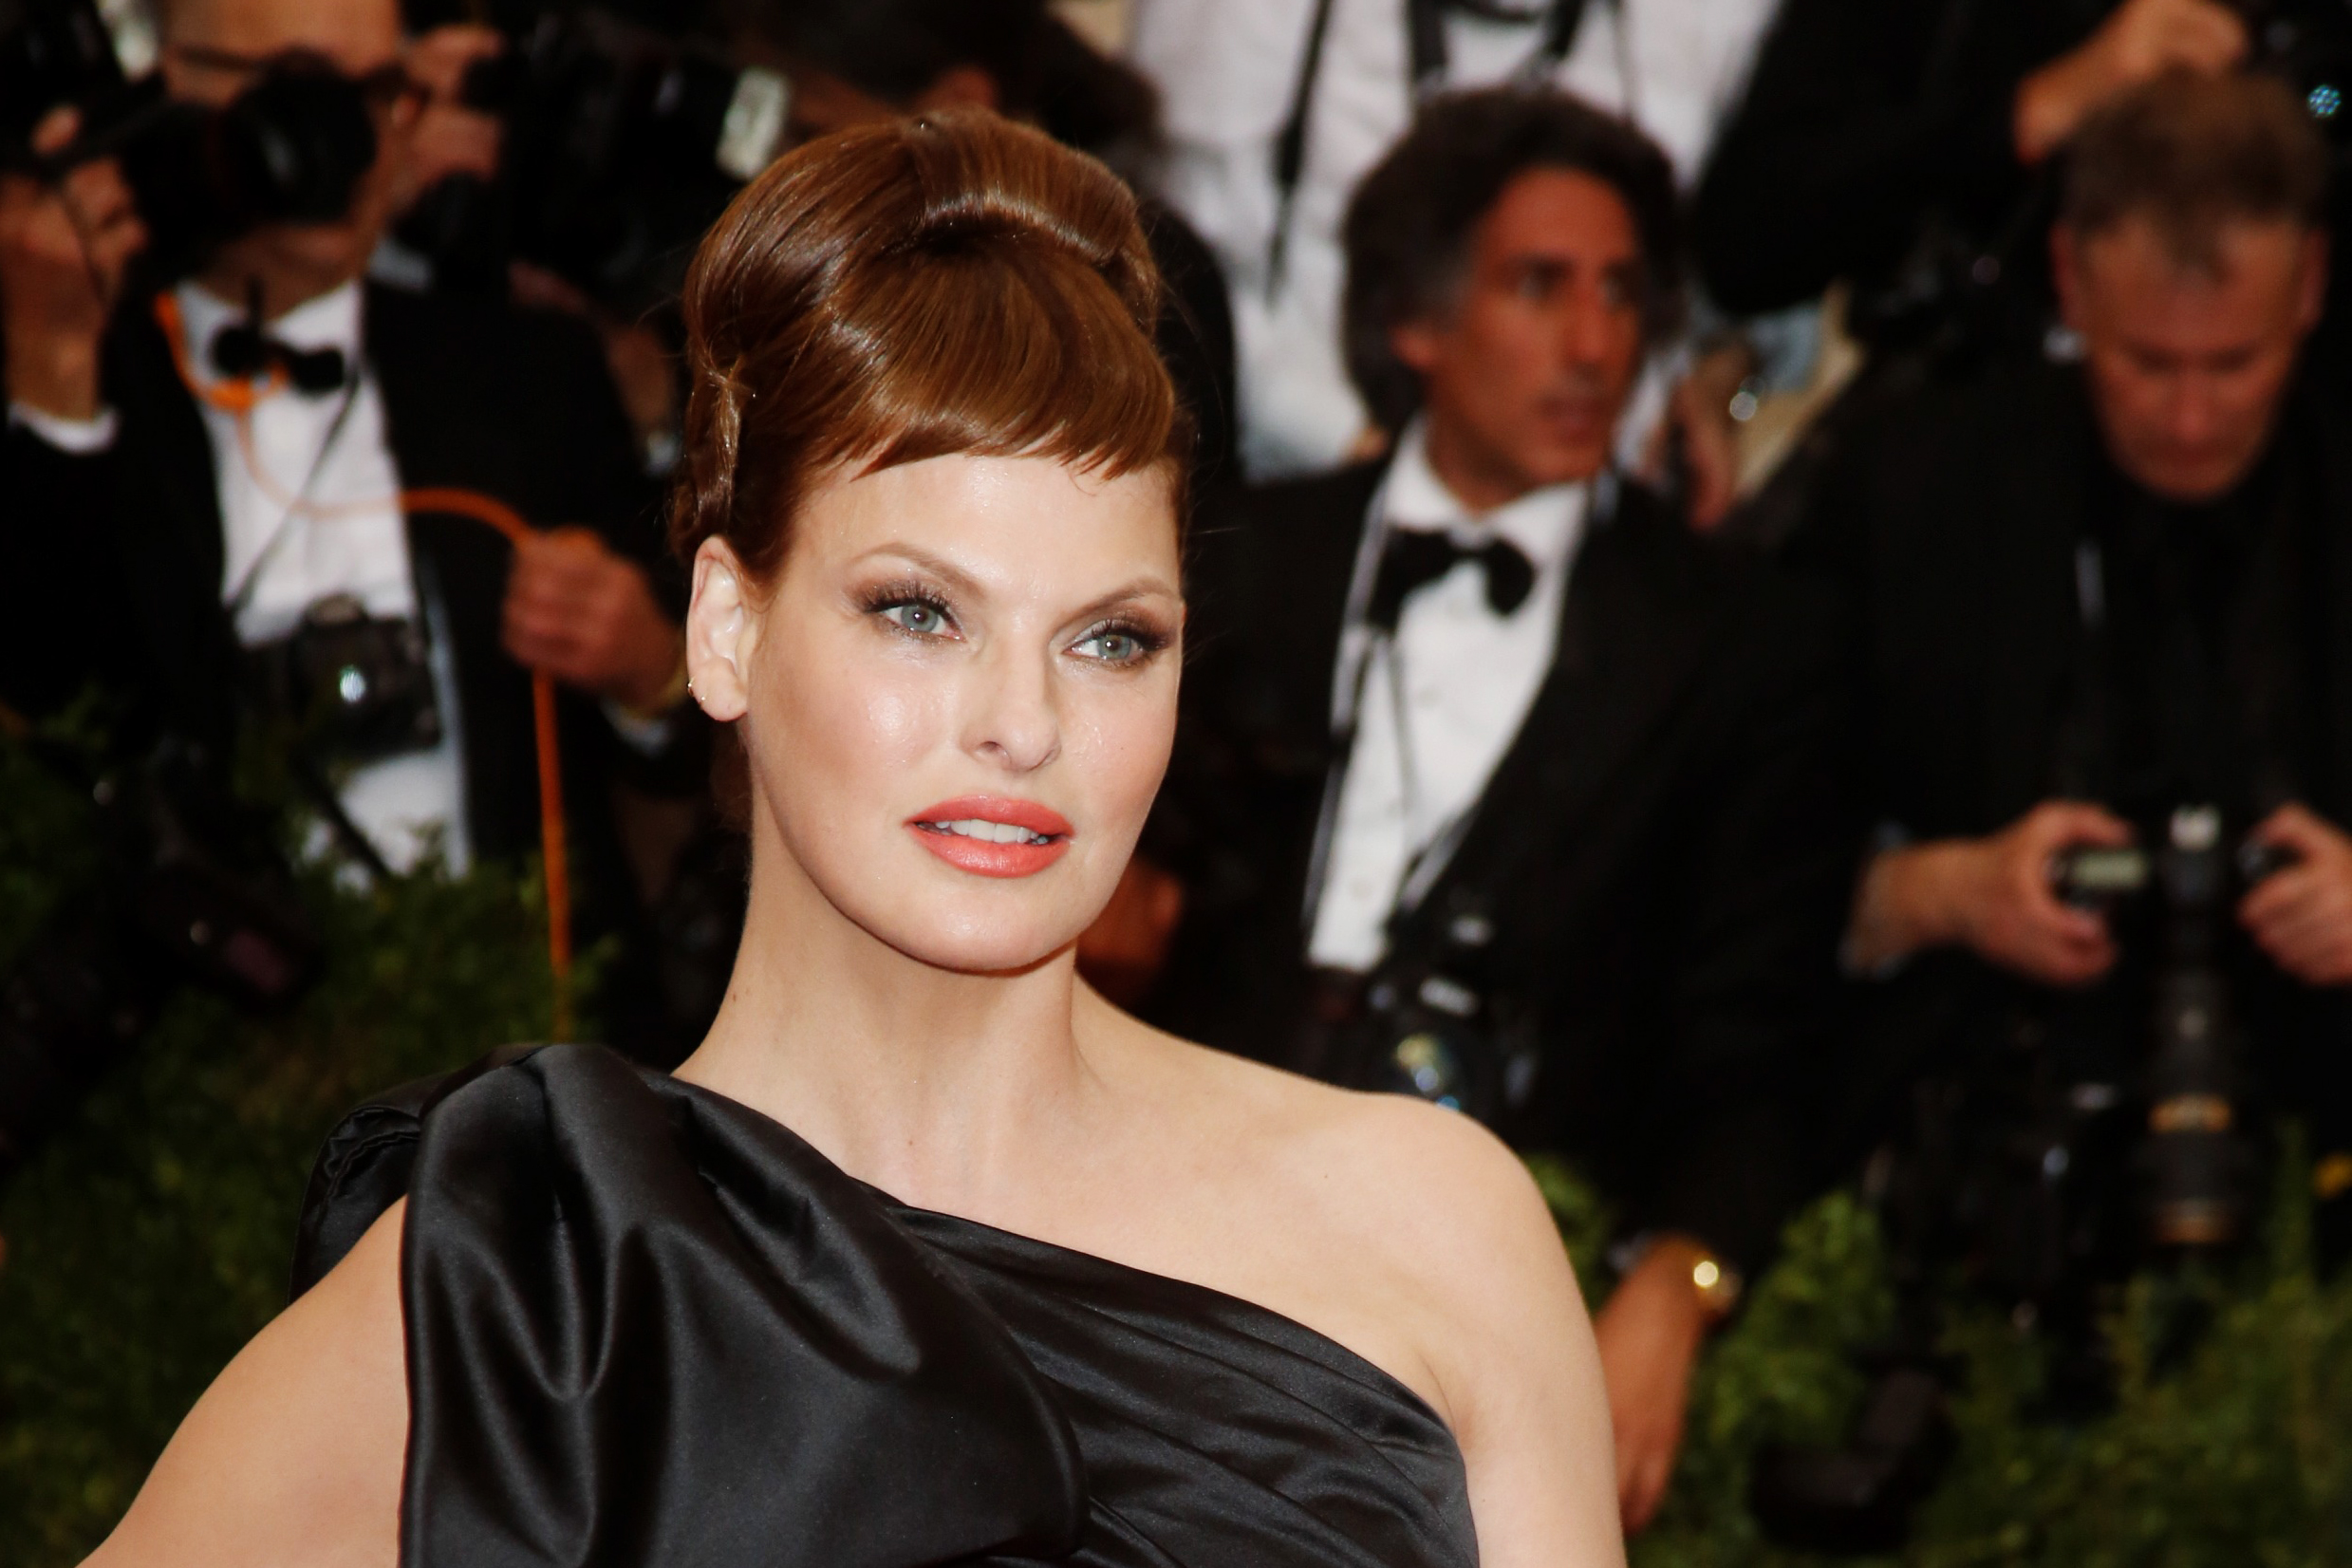 Linda Evangelista's lawsuit shows the dangers of plastic surgery — and denying aging